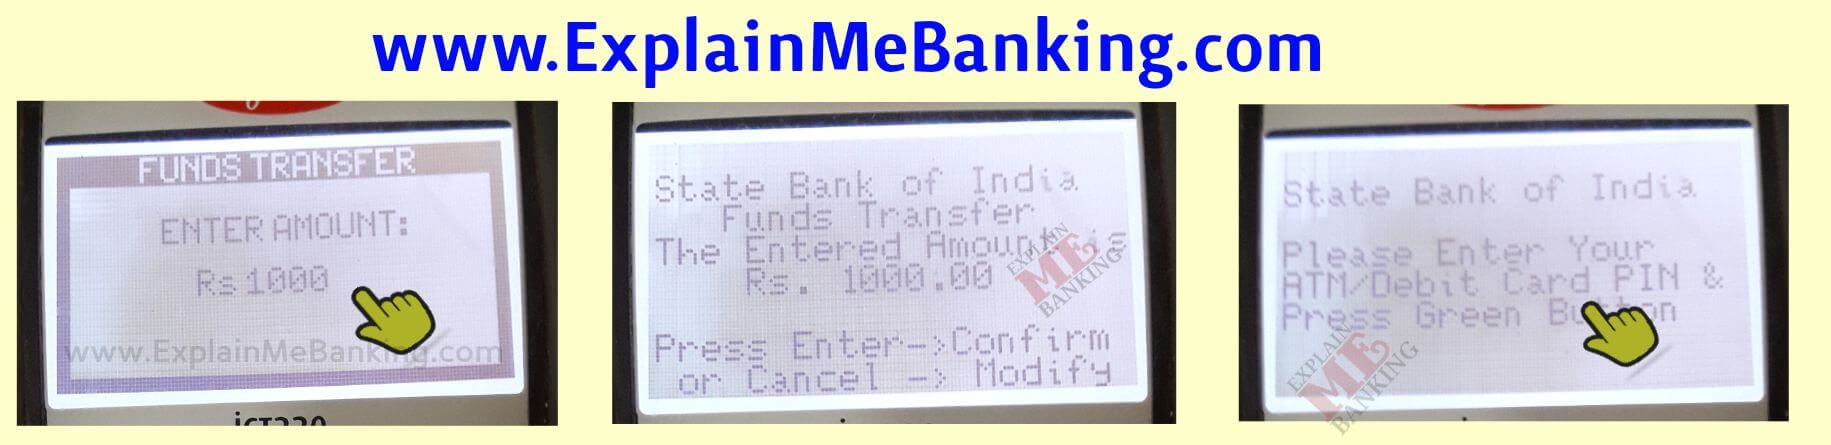 SBI Green Channel Fund Transfer